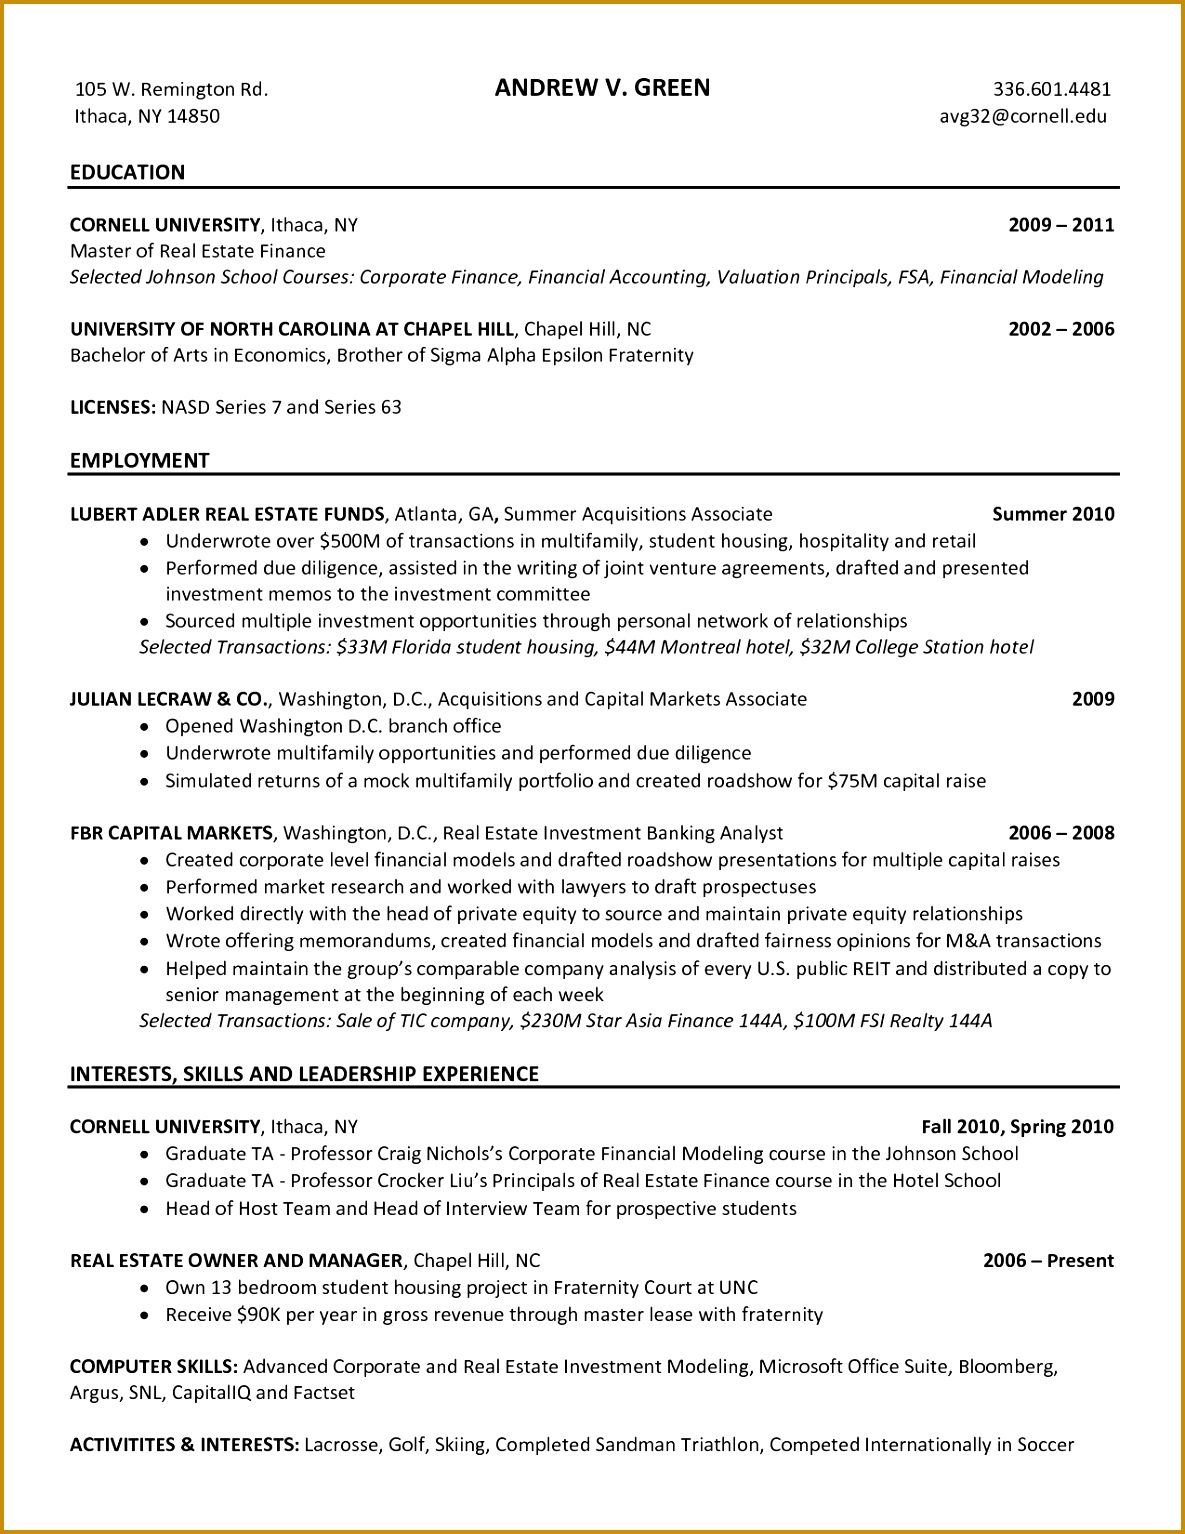 Magnificent Cover Letter for Investment Banking Sample In Professional College Essay Writers Causes and Effects 15341185